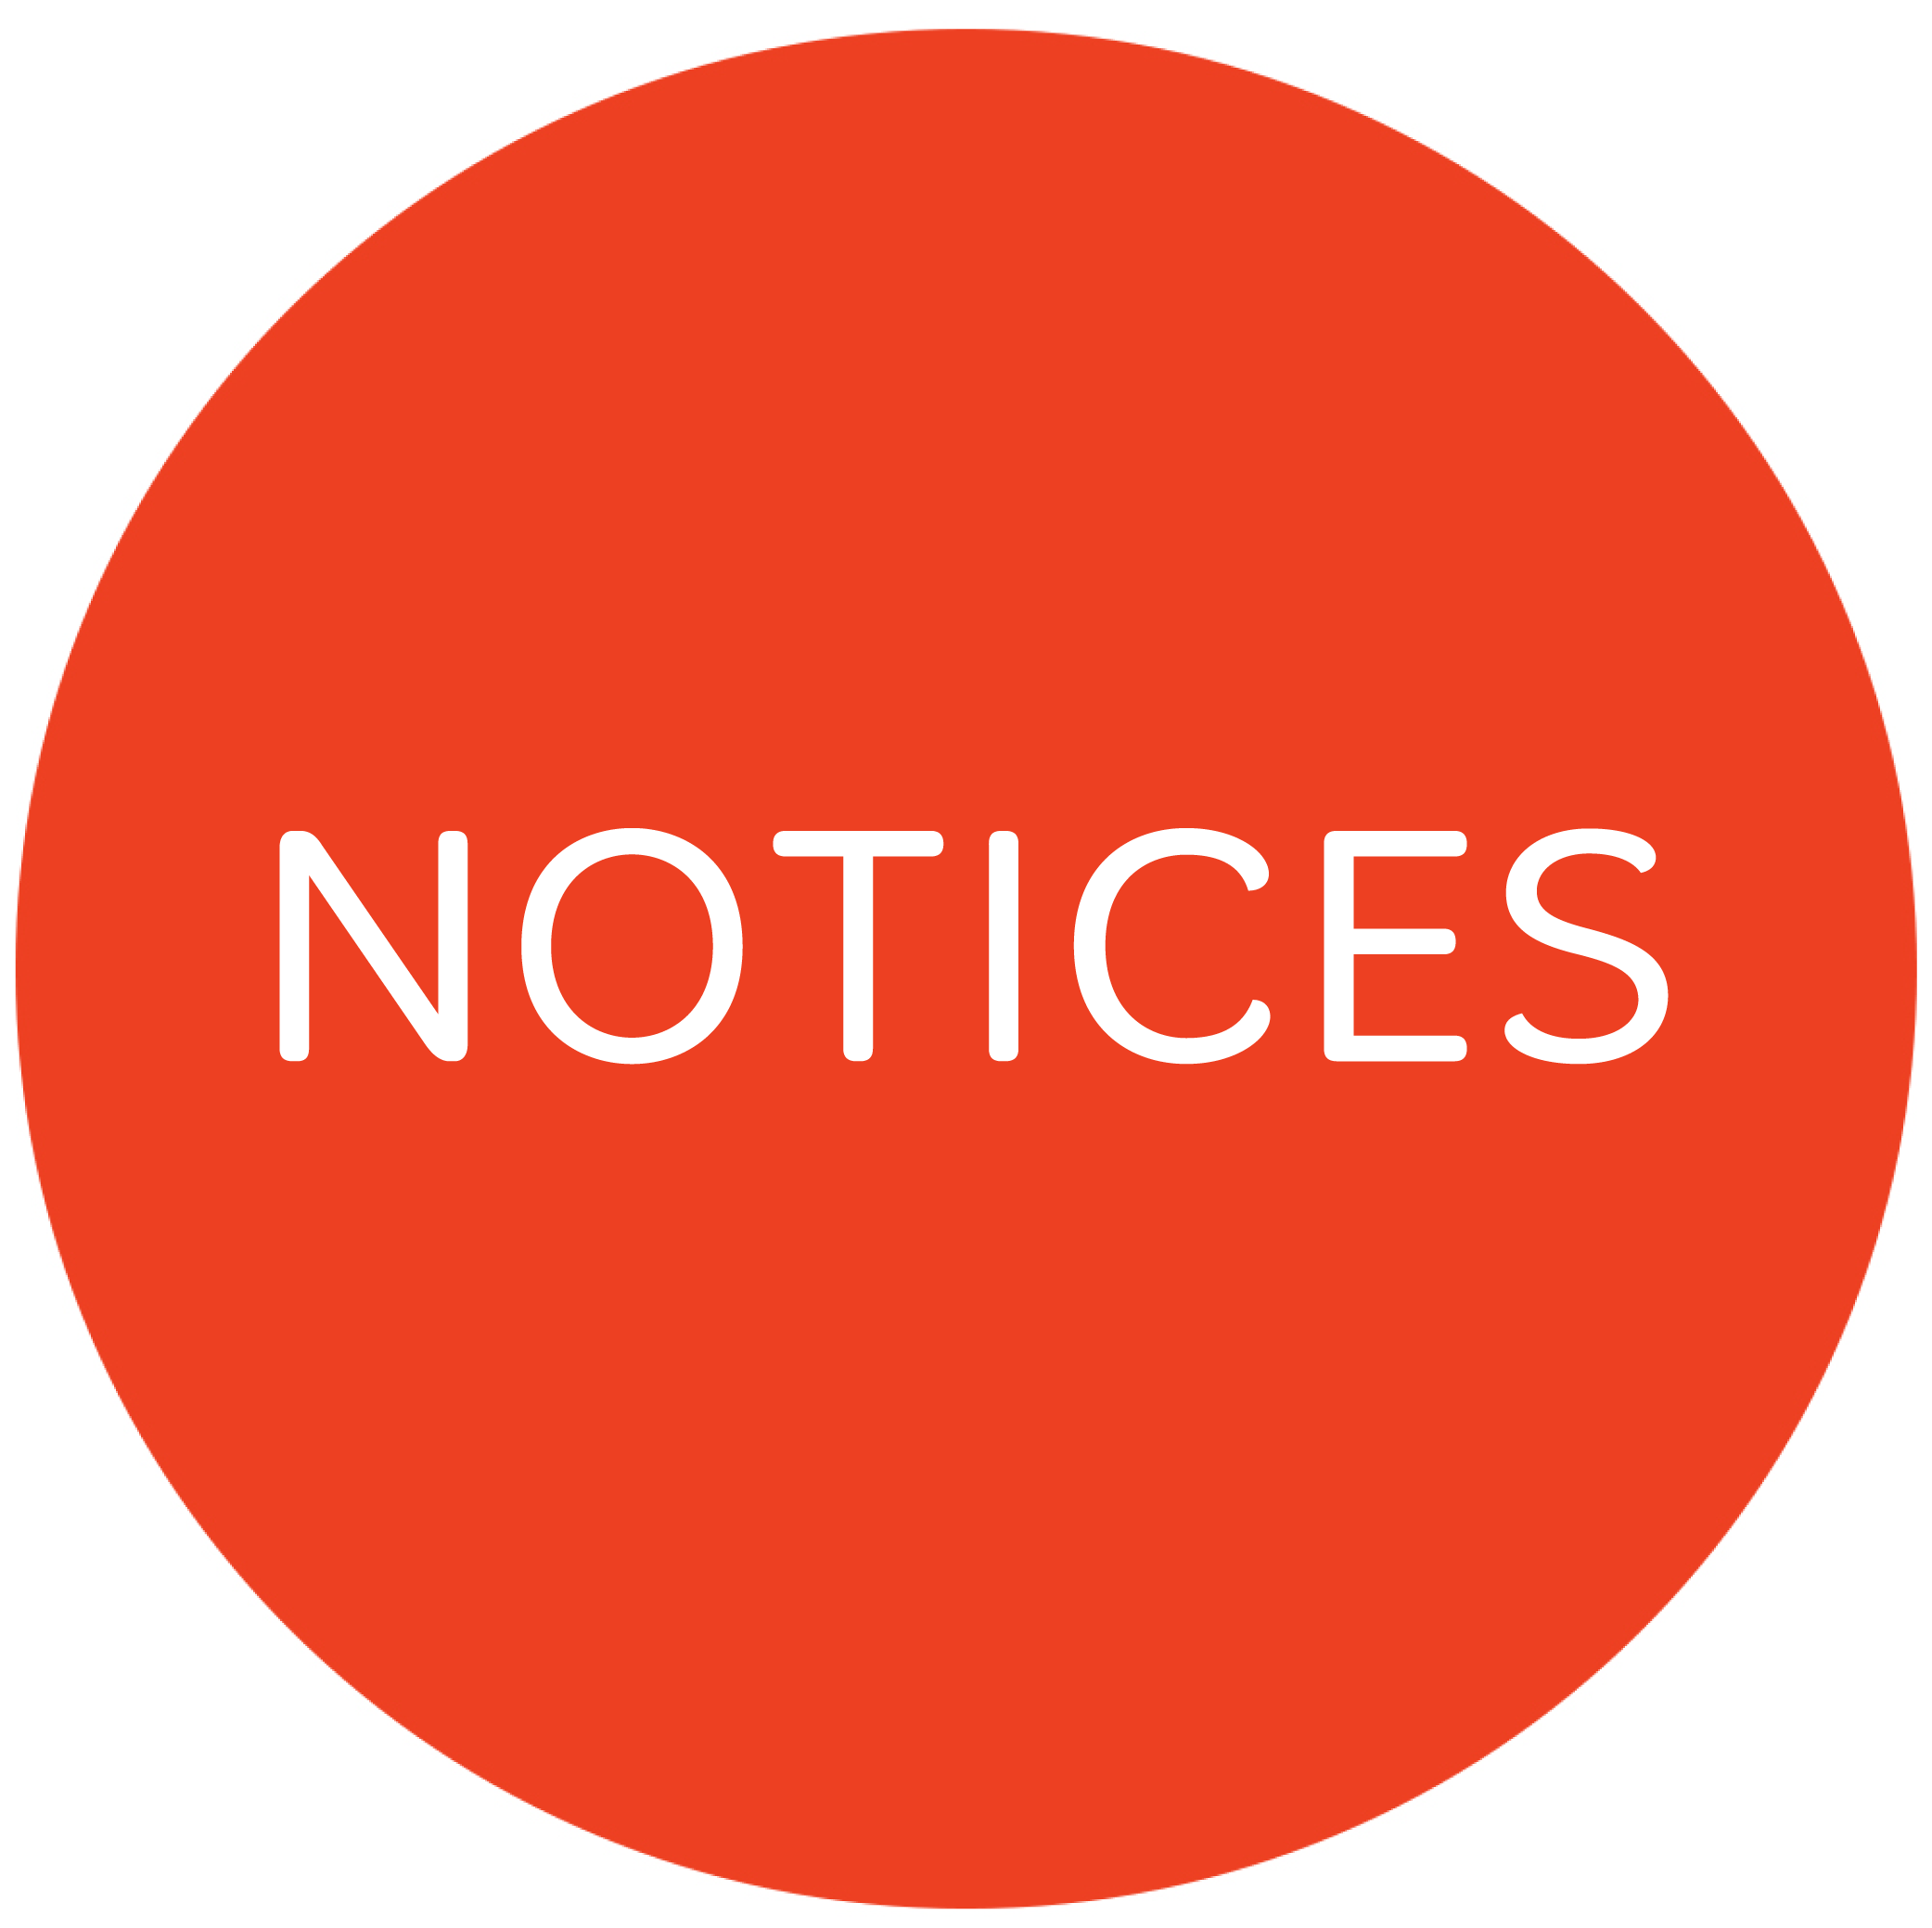 Notices- 30 September 2018